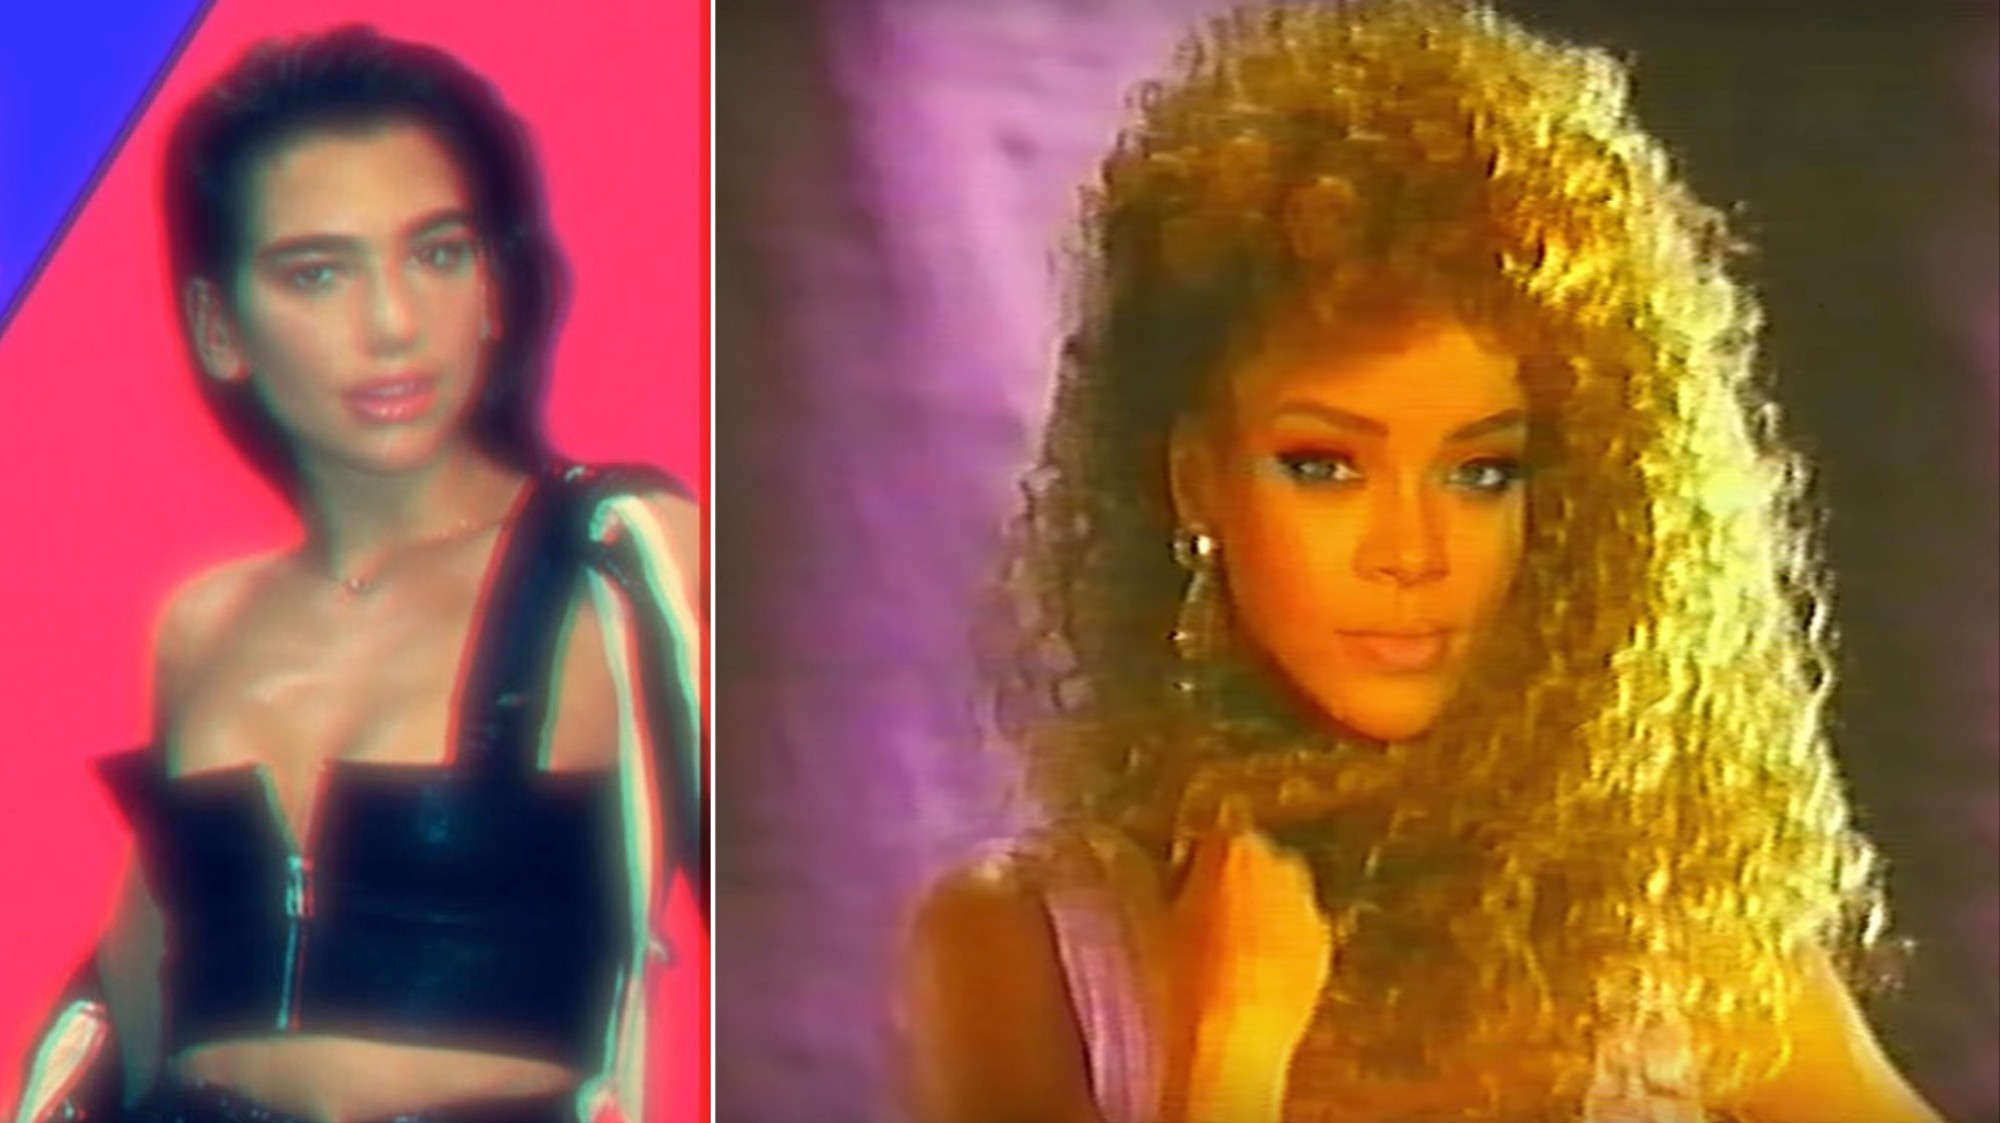 Why the 80s Remixes of New Pop Songs Are So Addictive - VICE